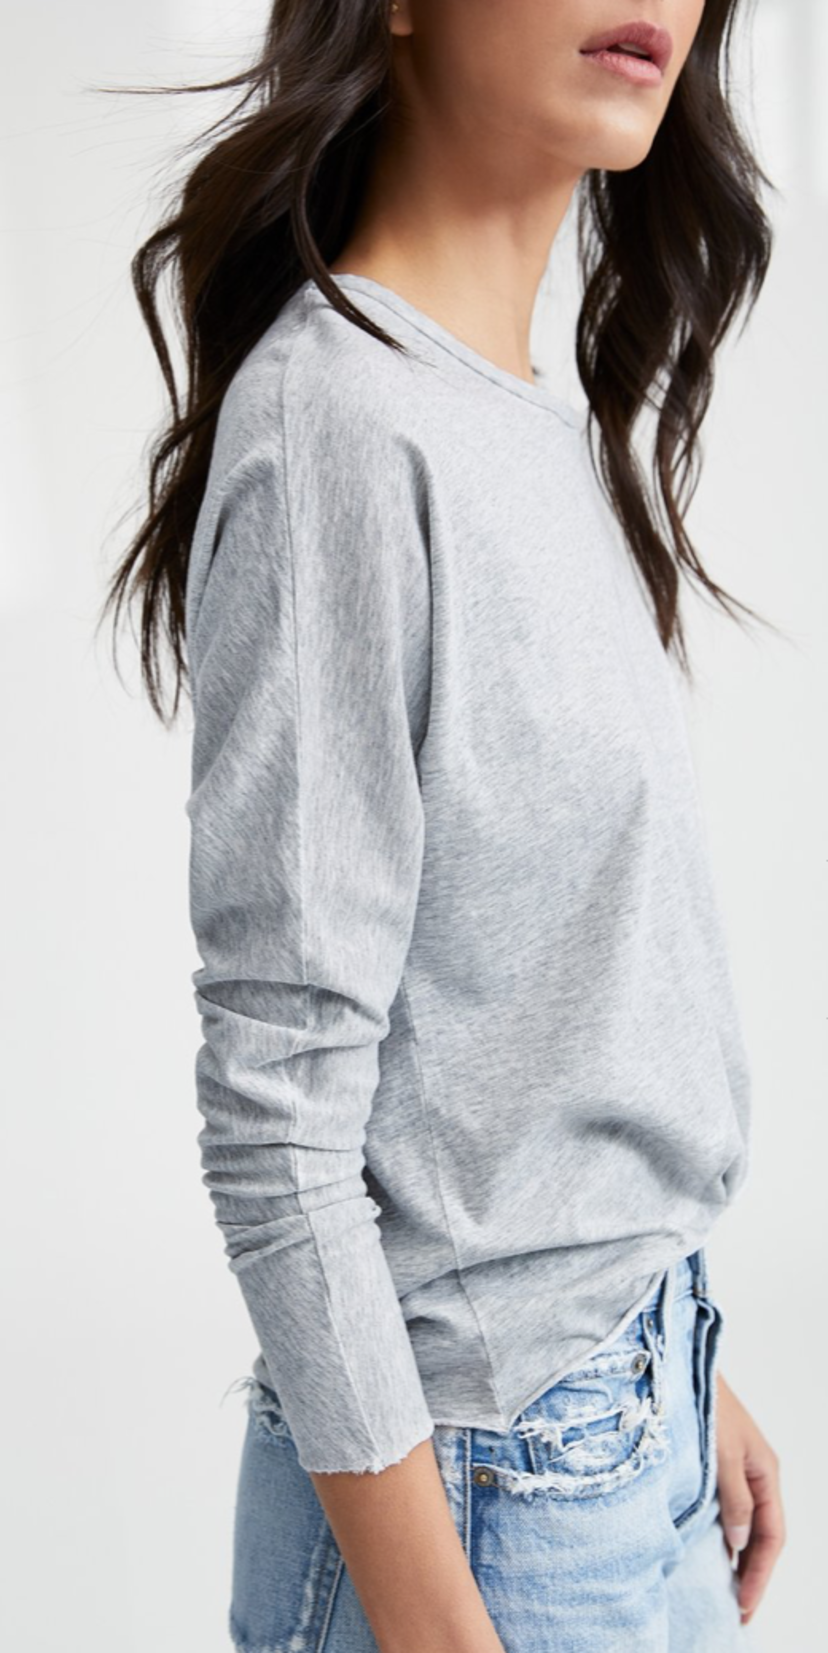 Tee Lab by Frank & Eileen Continuous Sleeve Tee - Grey Tops